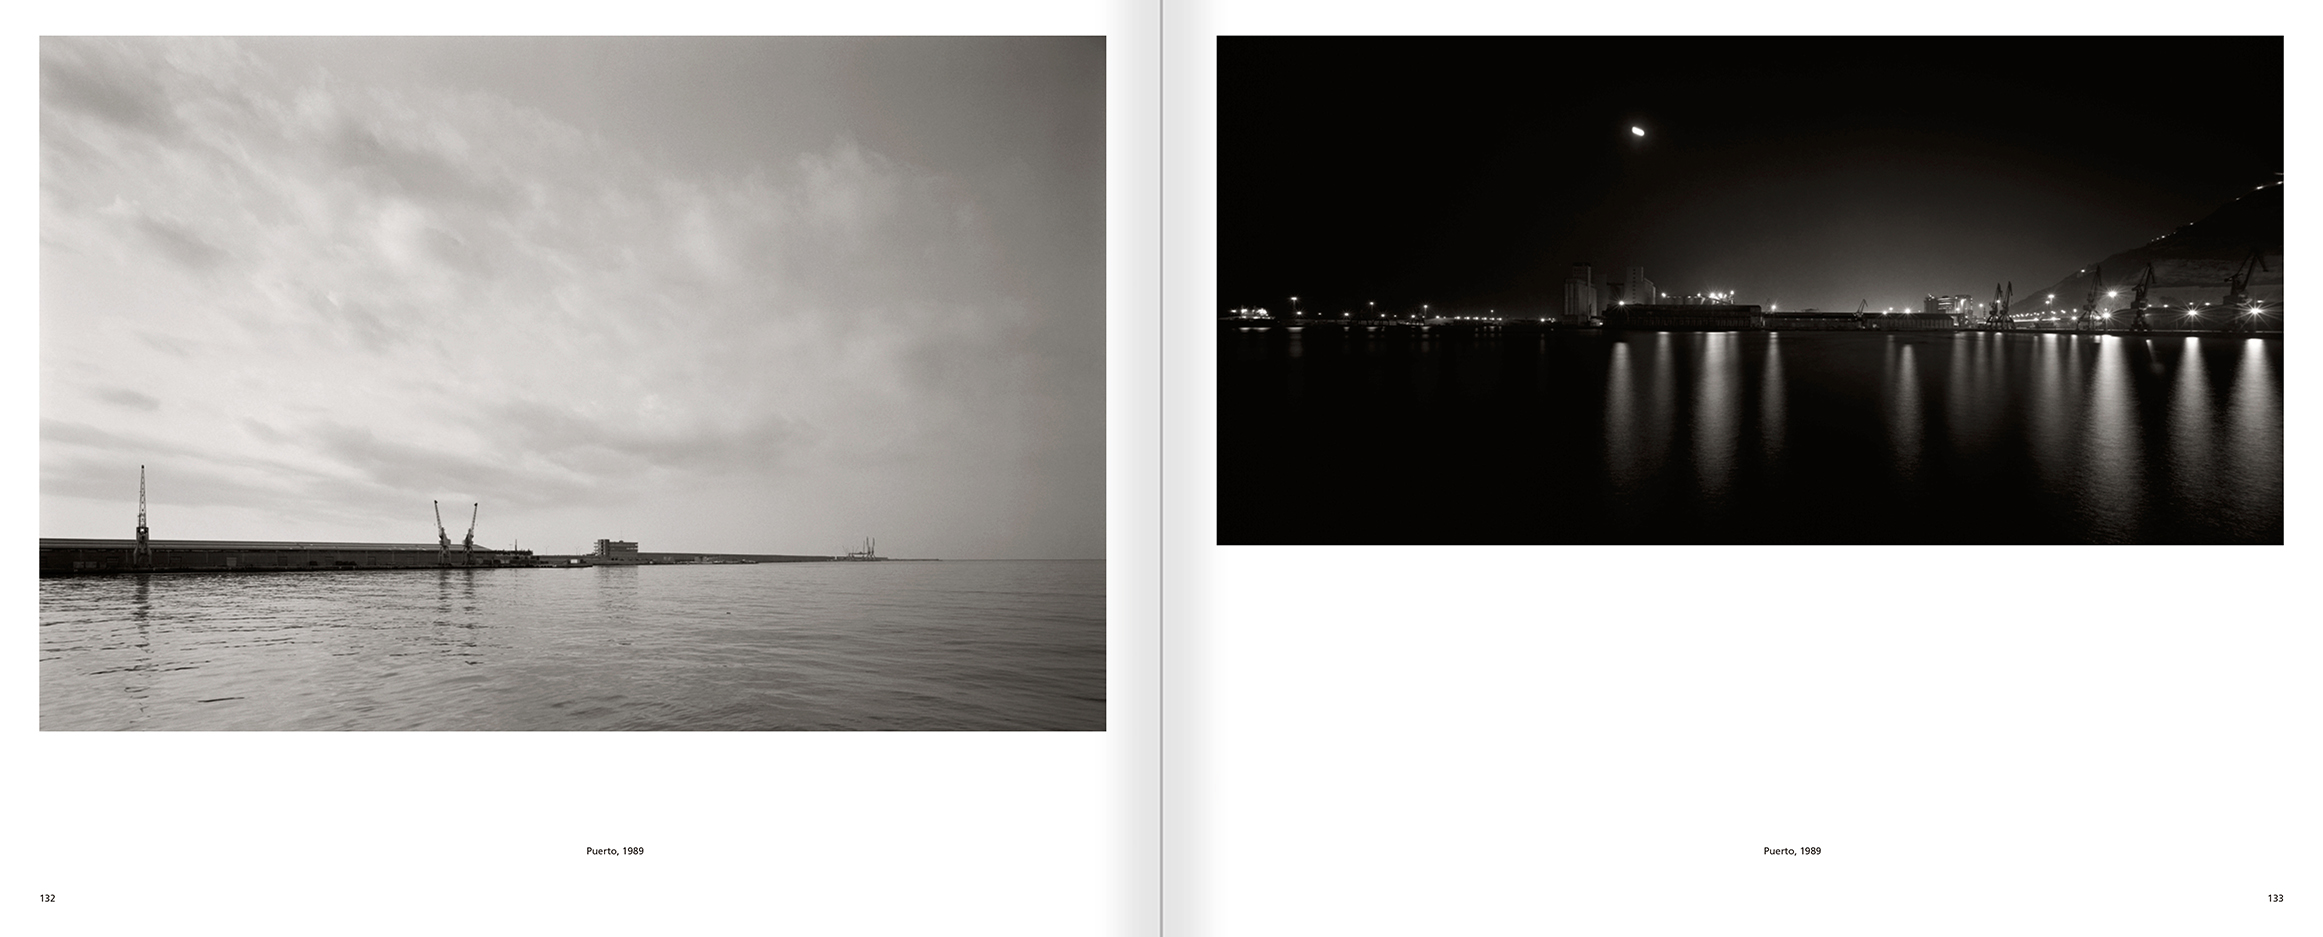 Selection from the catalogue 'Barcelona 1978-1997. Manolo Laguillo', pages 132 and 133